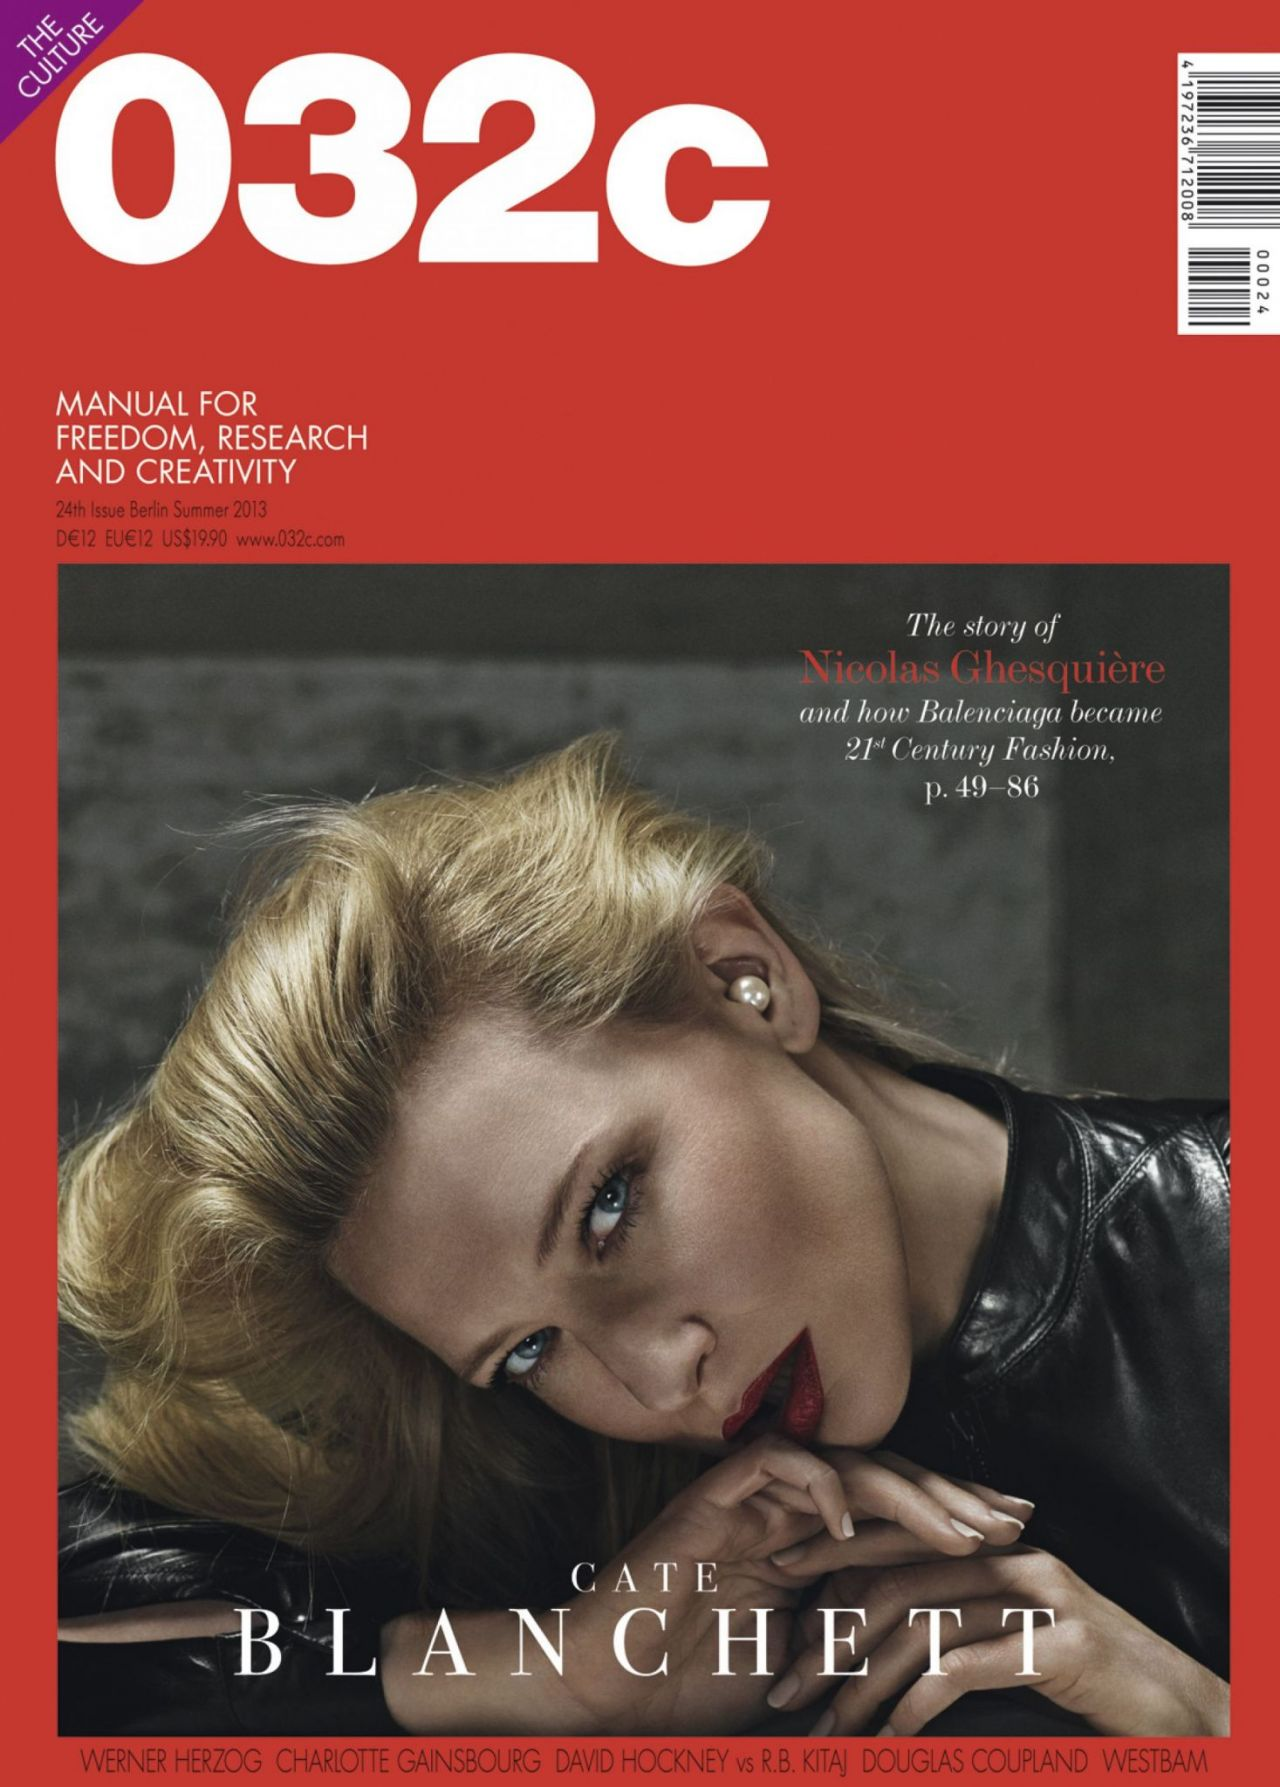 Cate Blanchett - 032C Magazine - Summer 2013 Issue